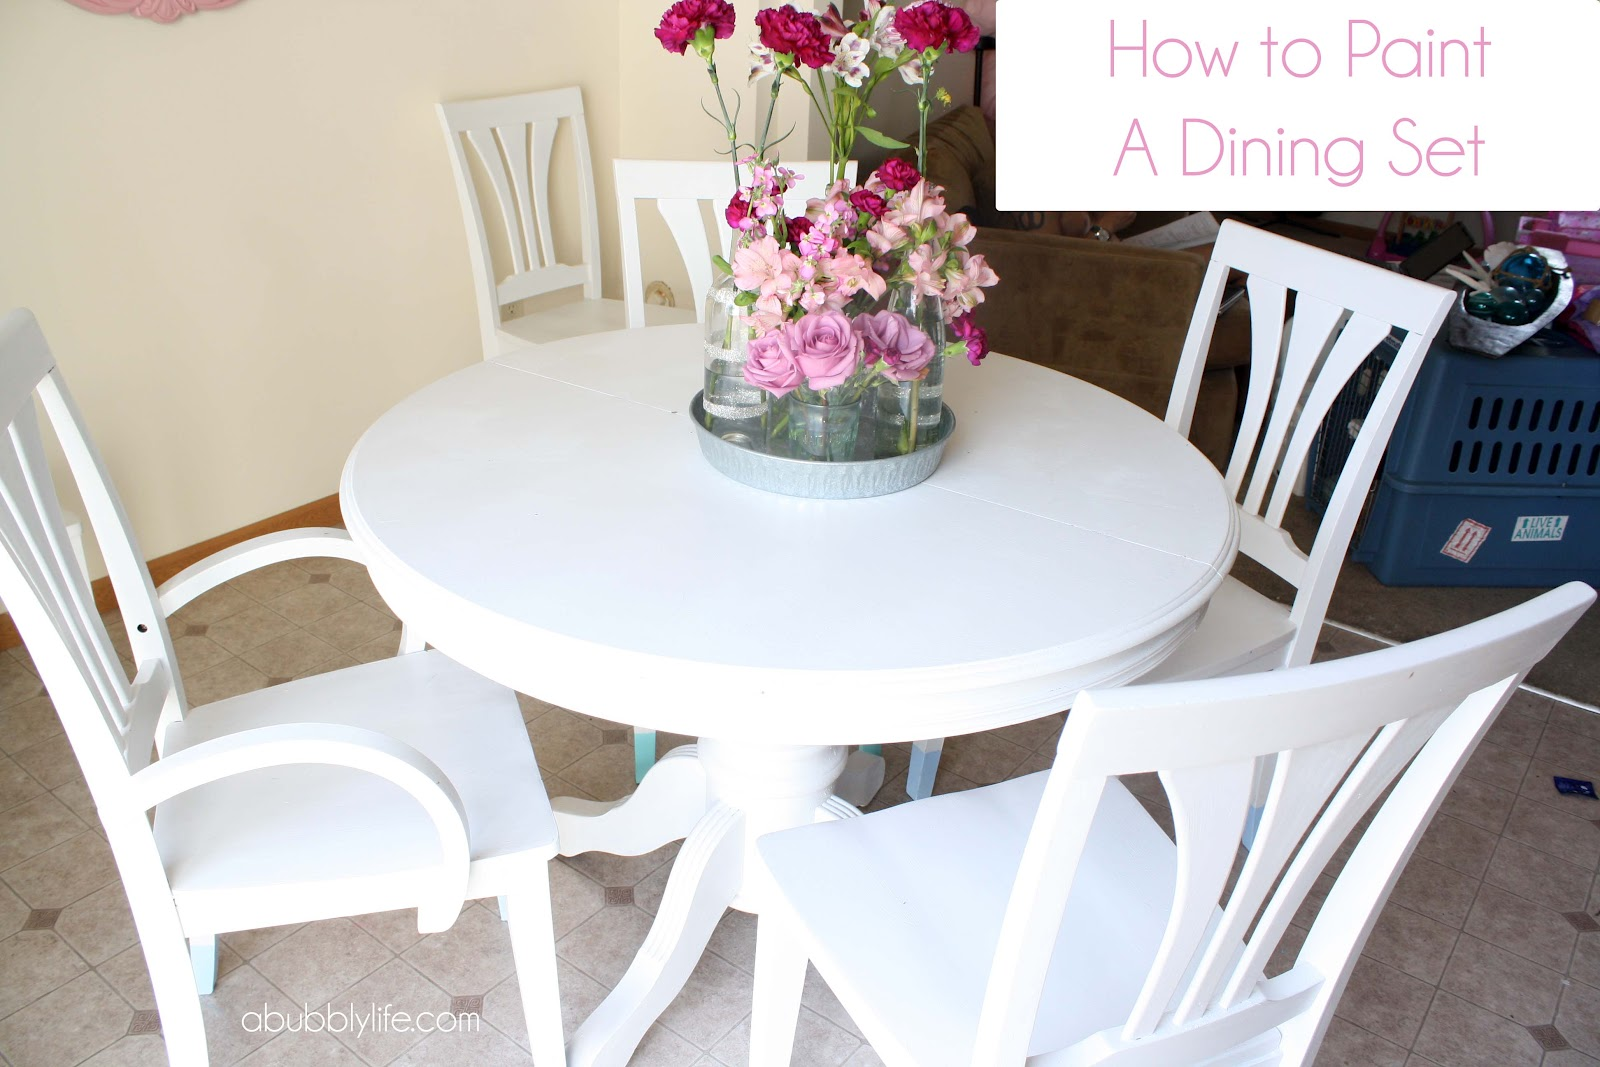 Can you paint a dining room table